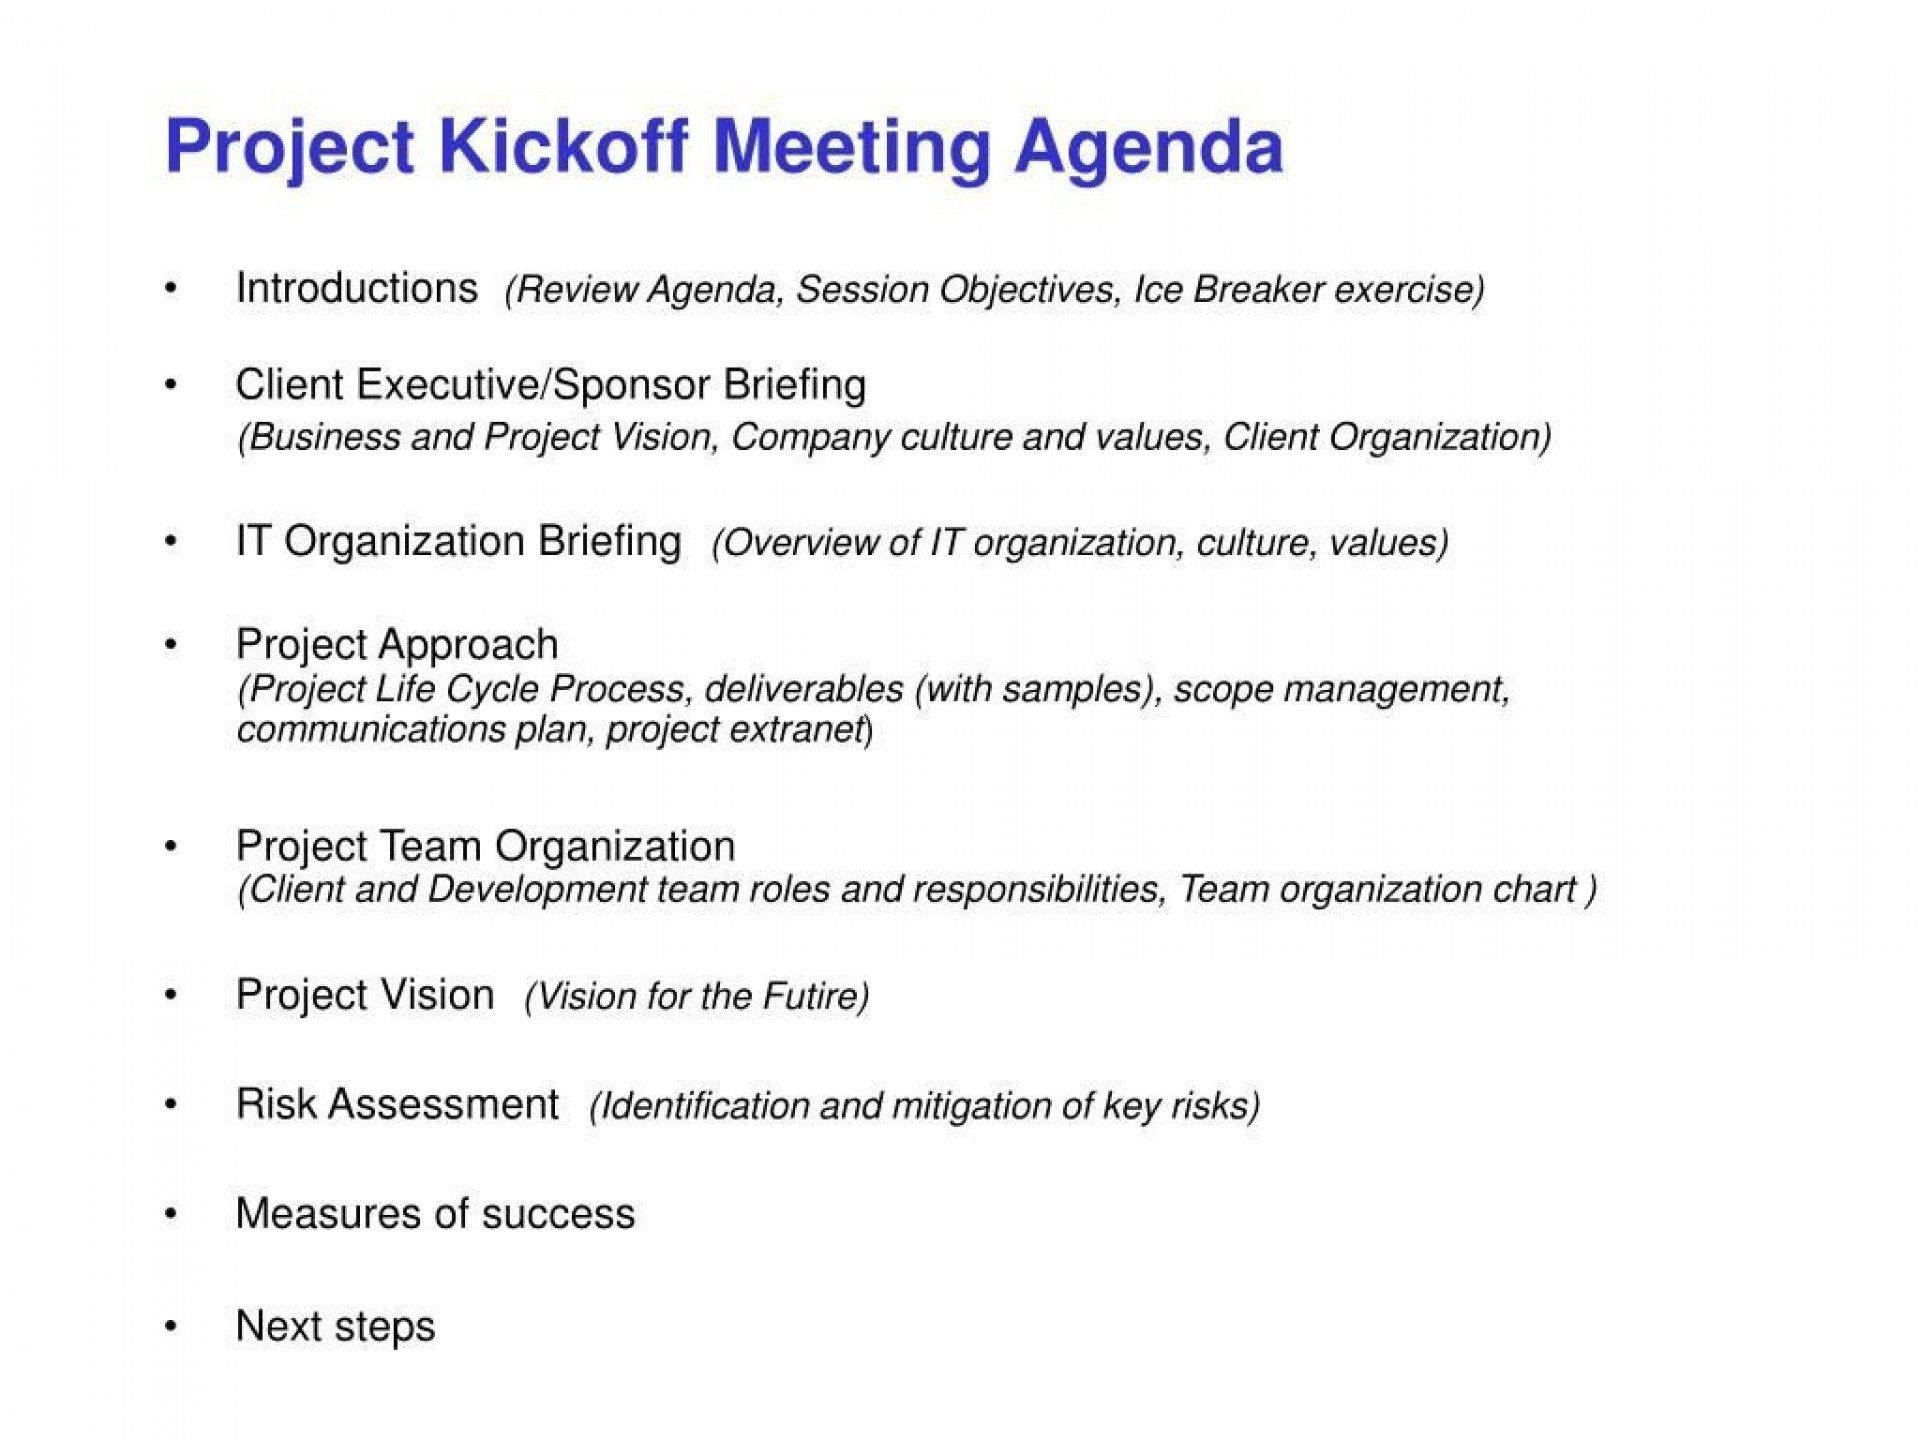 005 Surprising Construction Project Kickoff Meeting Agenda Template Picture Full